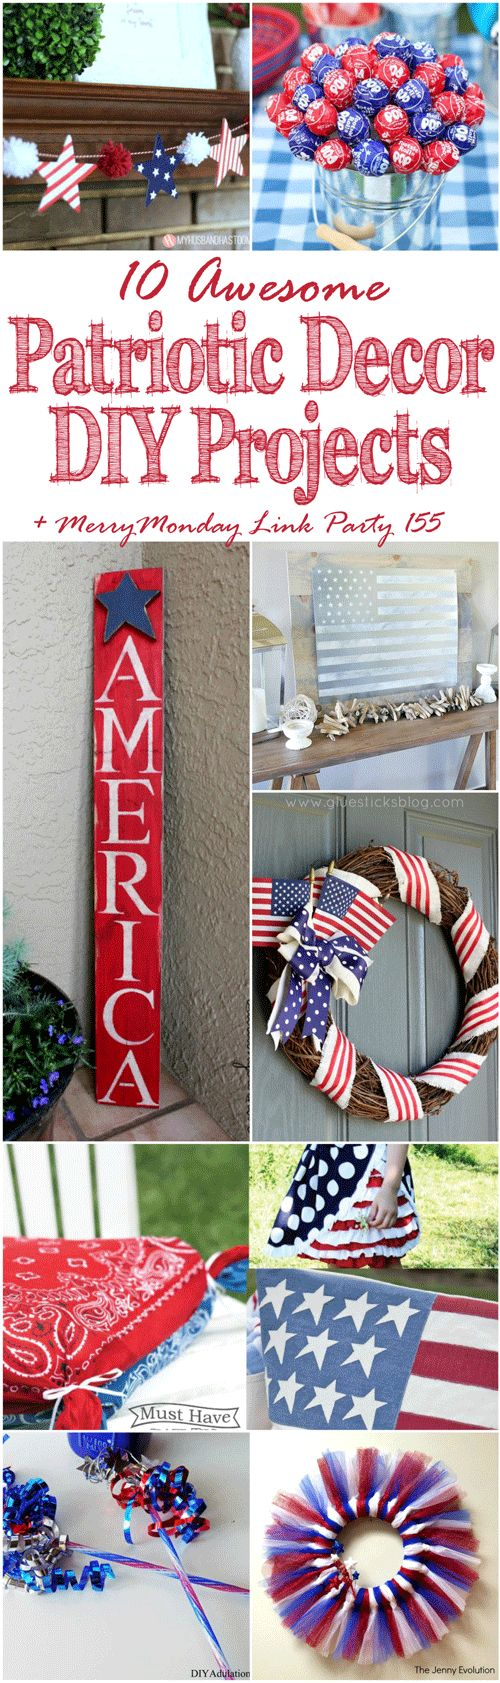 Best 25 memorial day decorations ideas on pinterest for Memorial day weekend ideas